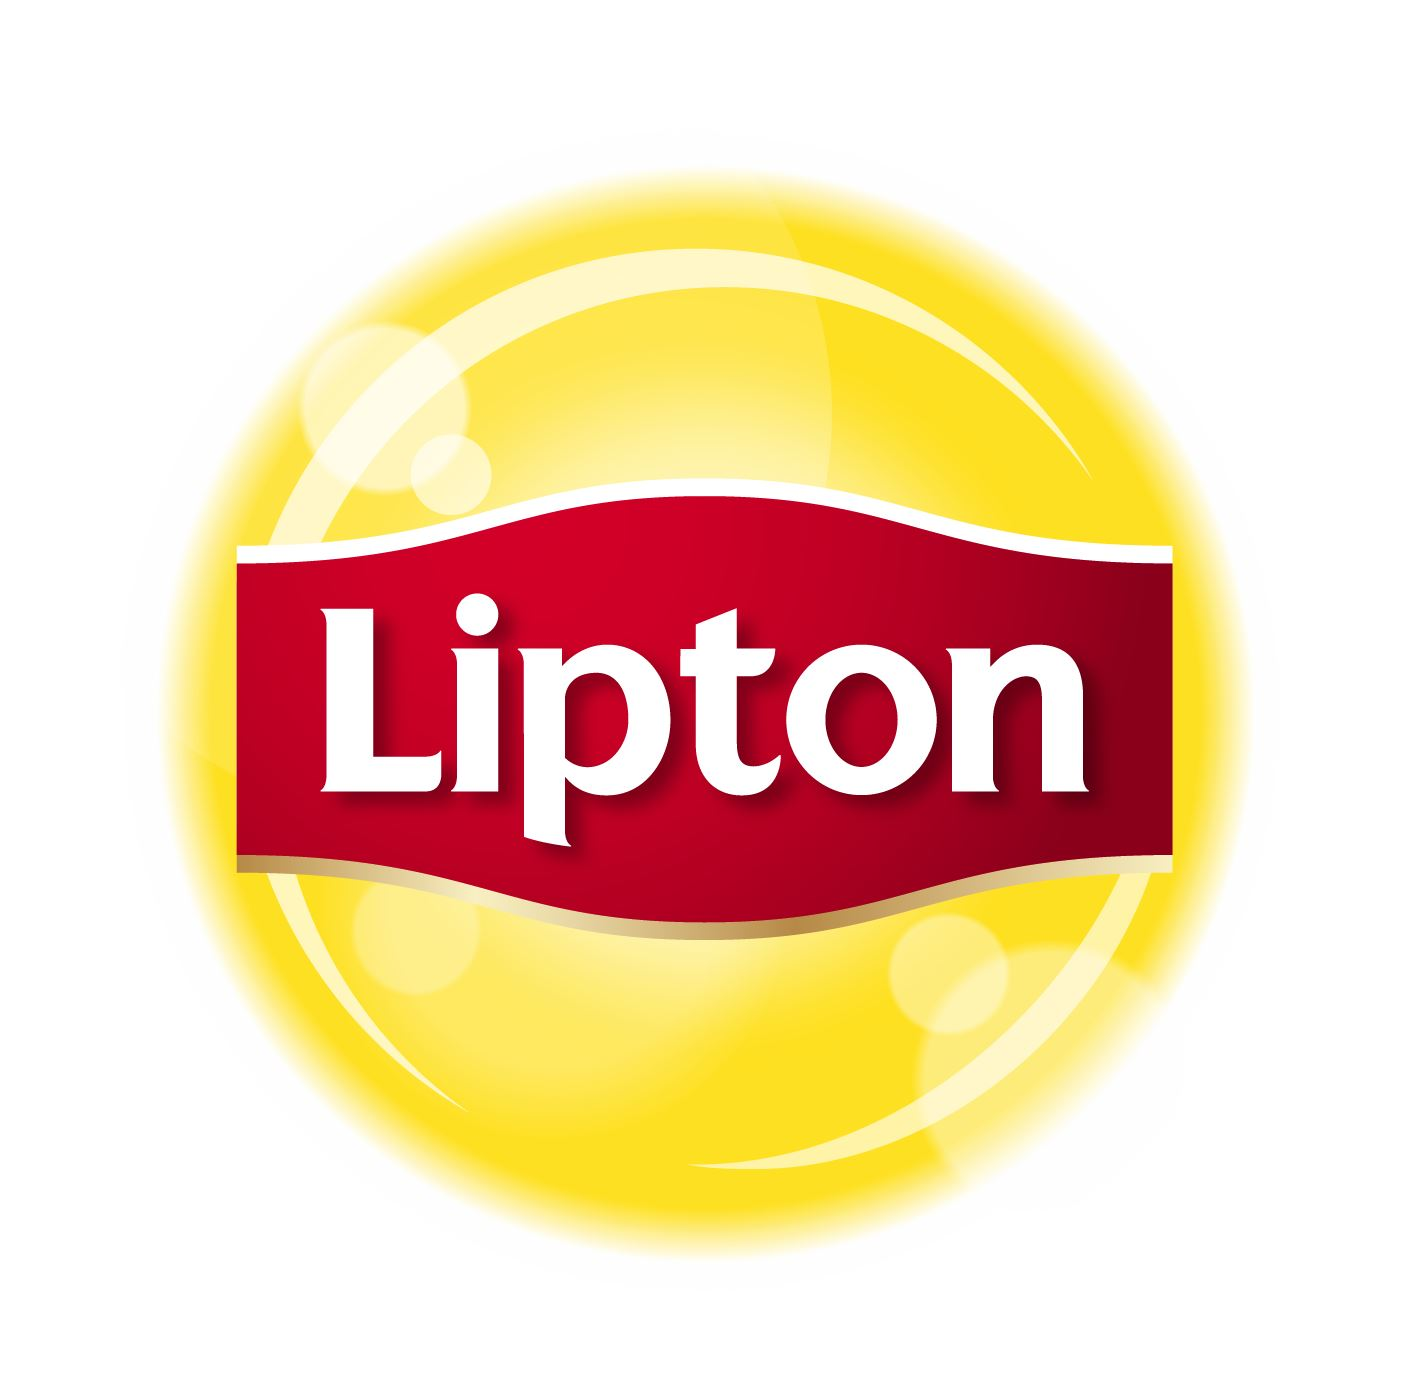 LIPTON_SCREEN_RGB_GLOBAL_Std